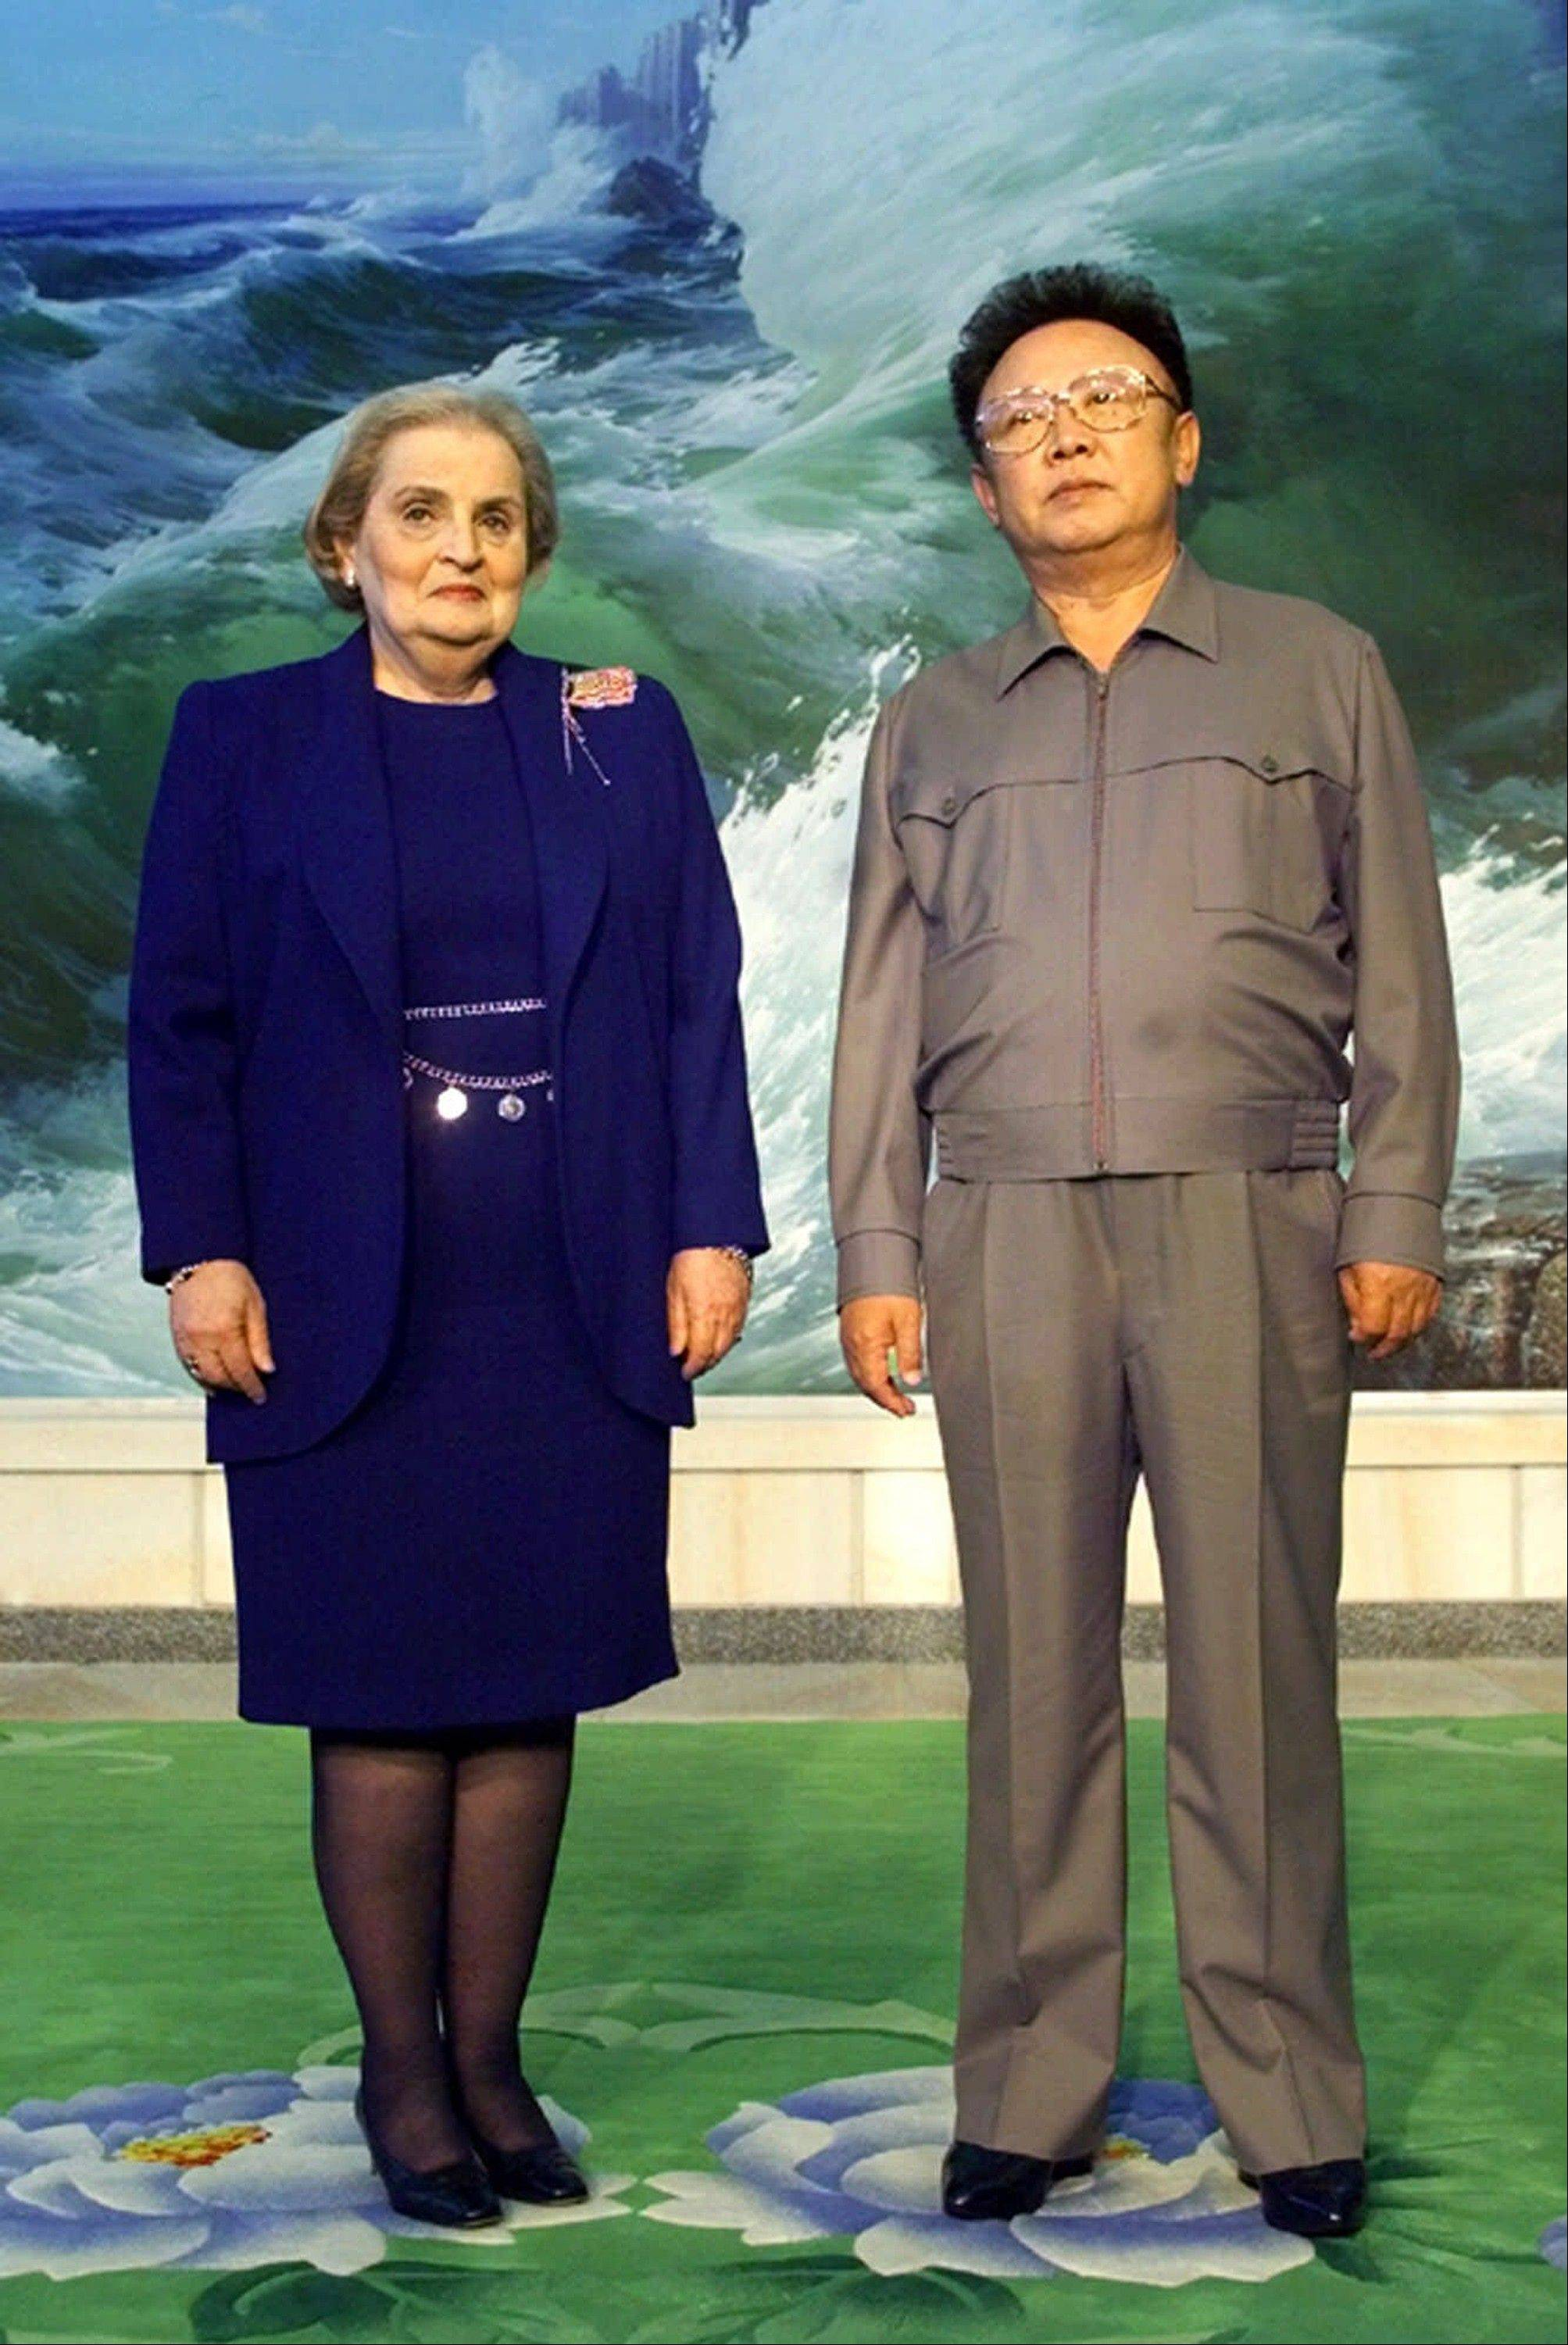 "In this Oct. 23, 2000, file photo, North Korean leader Kim Jong Il, right, and U.S. Secretary of State Madeleine Albright stand together at the Pae Kha Hawon Guest House in Pyongyang, North Korea. North Korean television announced in a ""special broadcast"" that its leader Kim Jong Il died in Pyongyang."